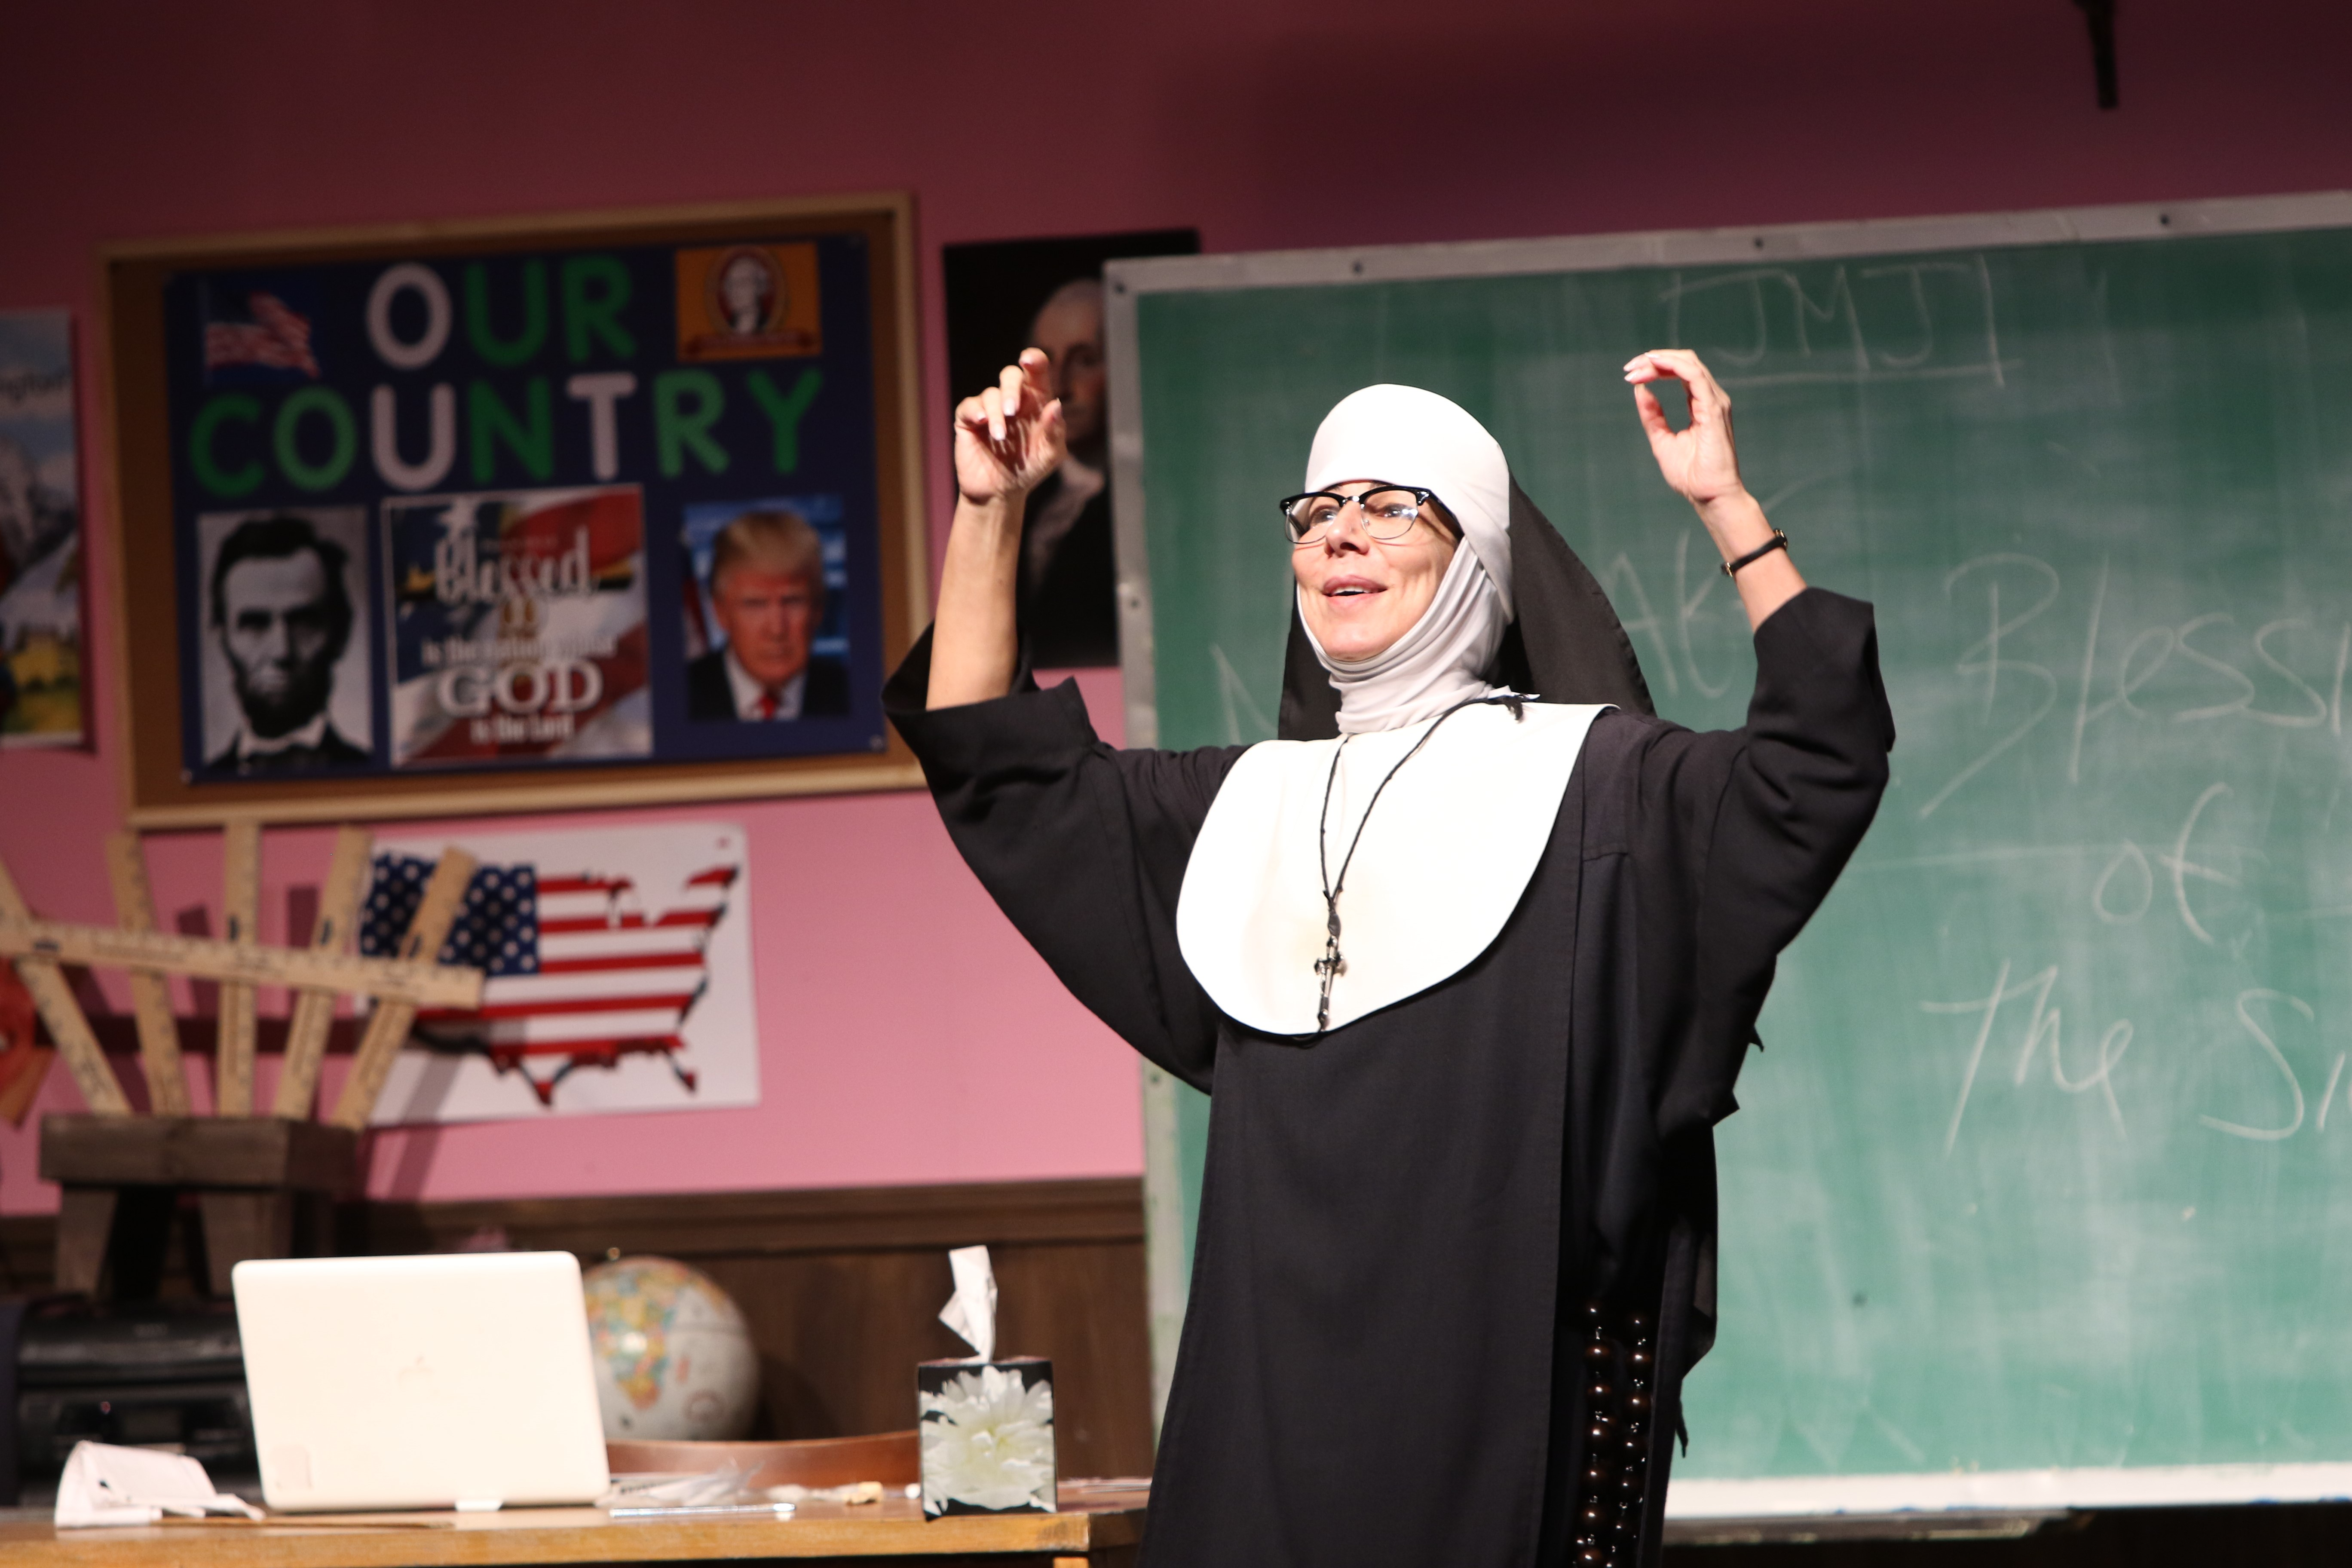 Nun dressed in a habit raises her arms